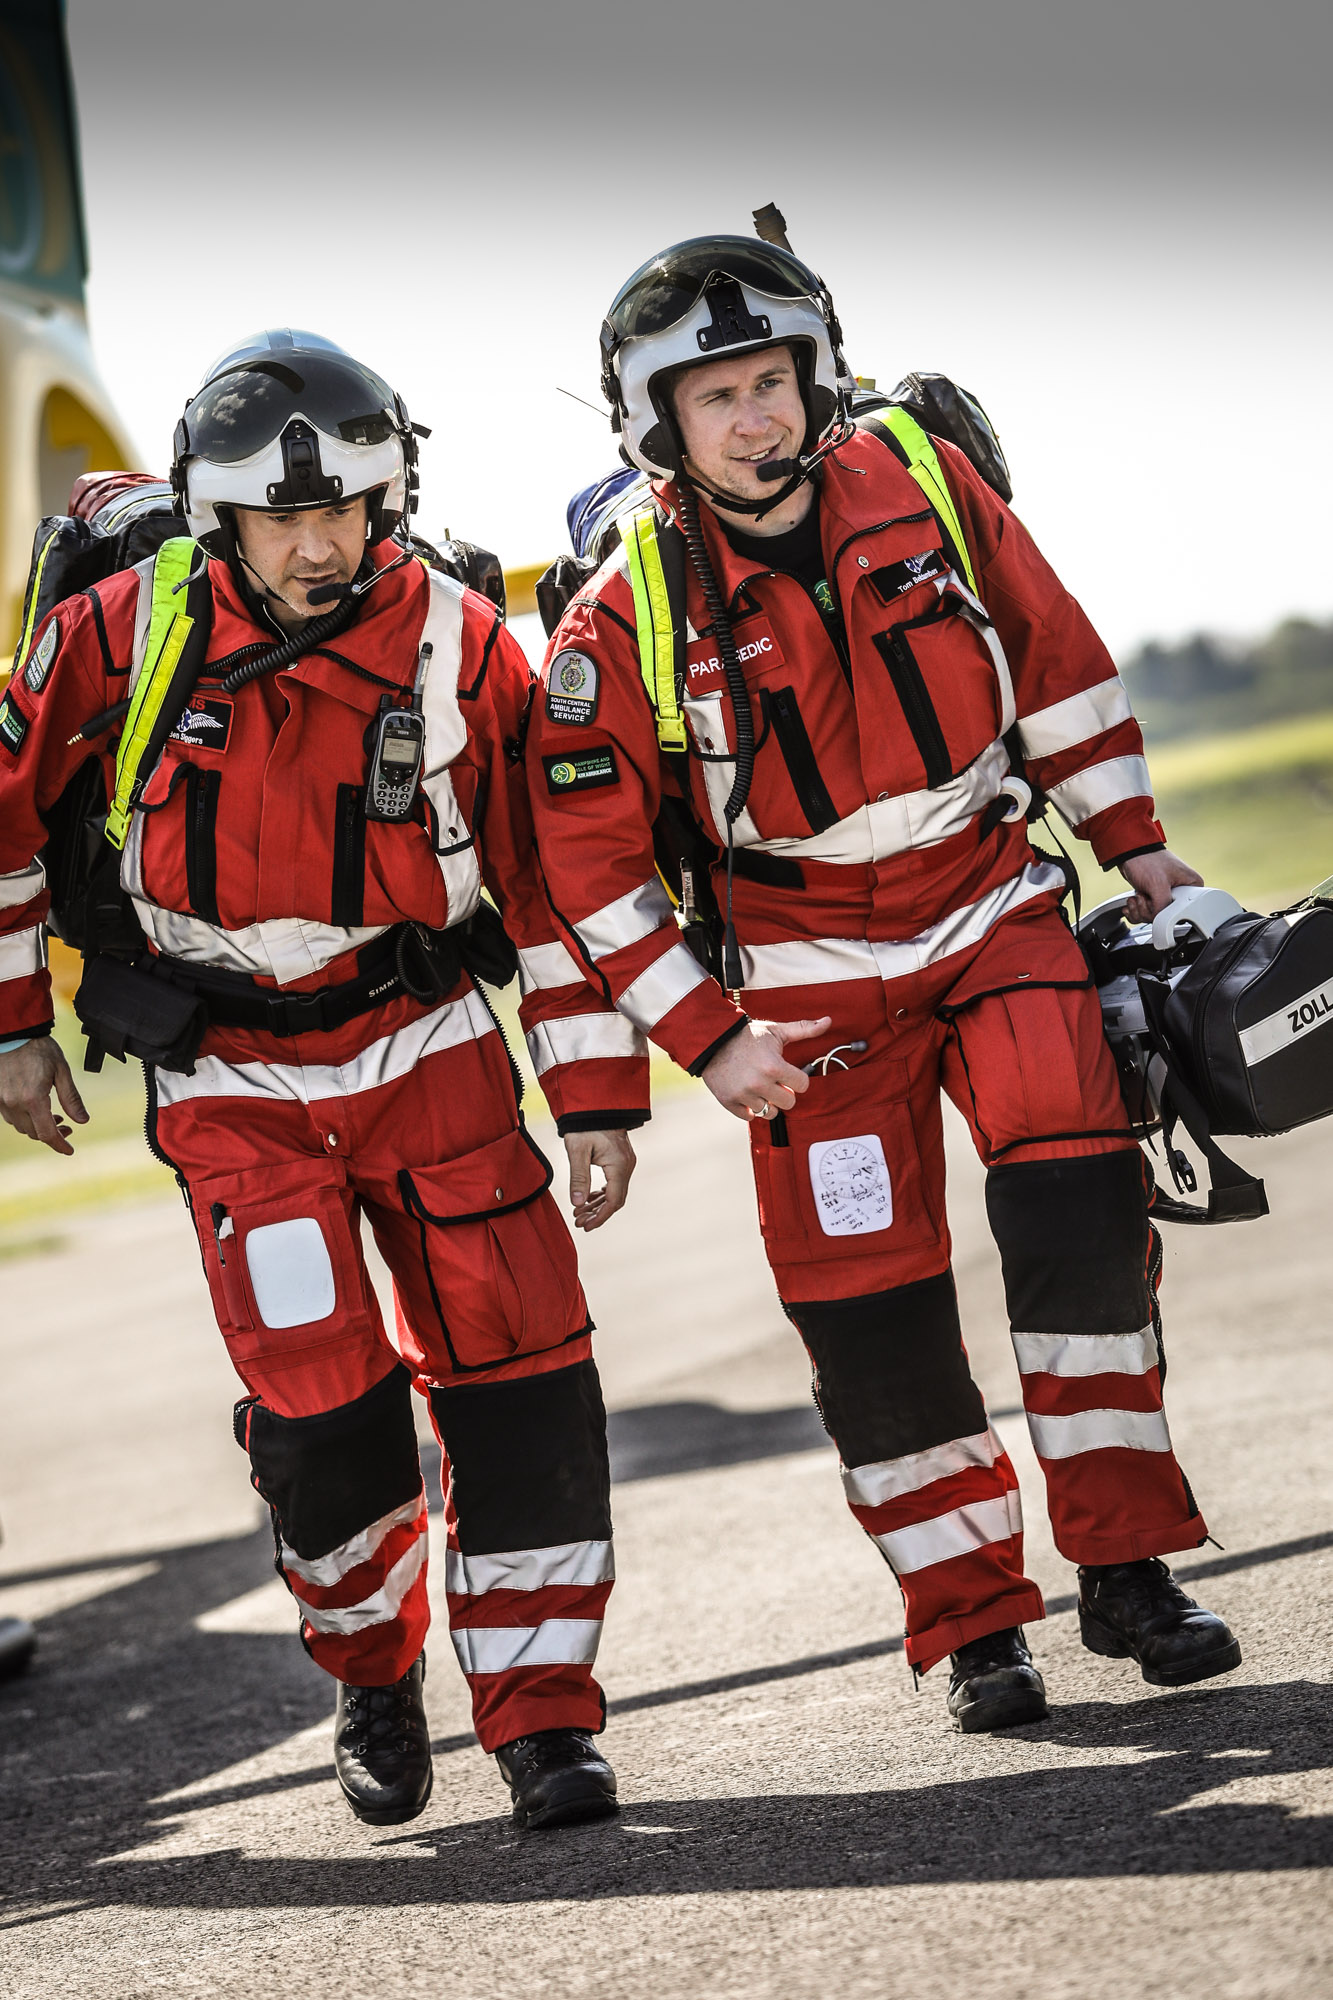 The Critical Care Team Hampshire And Isle Of Wight Air